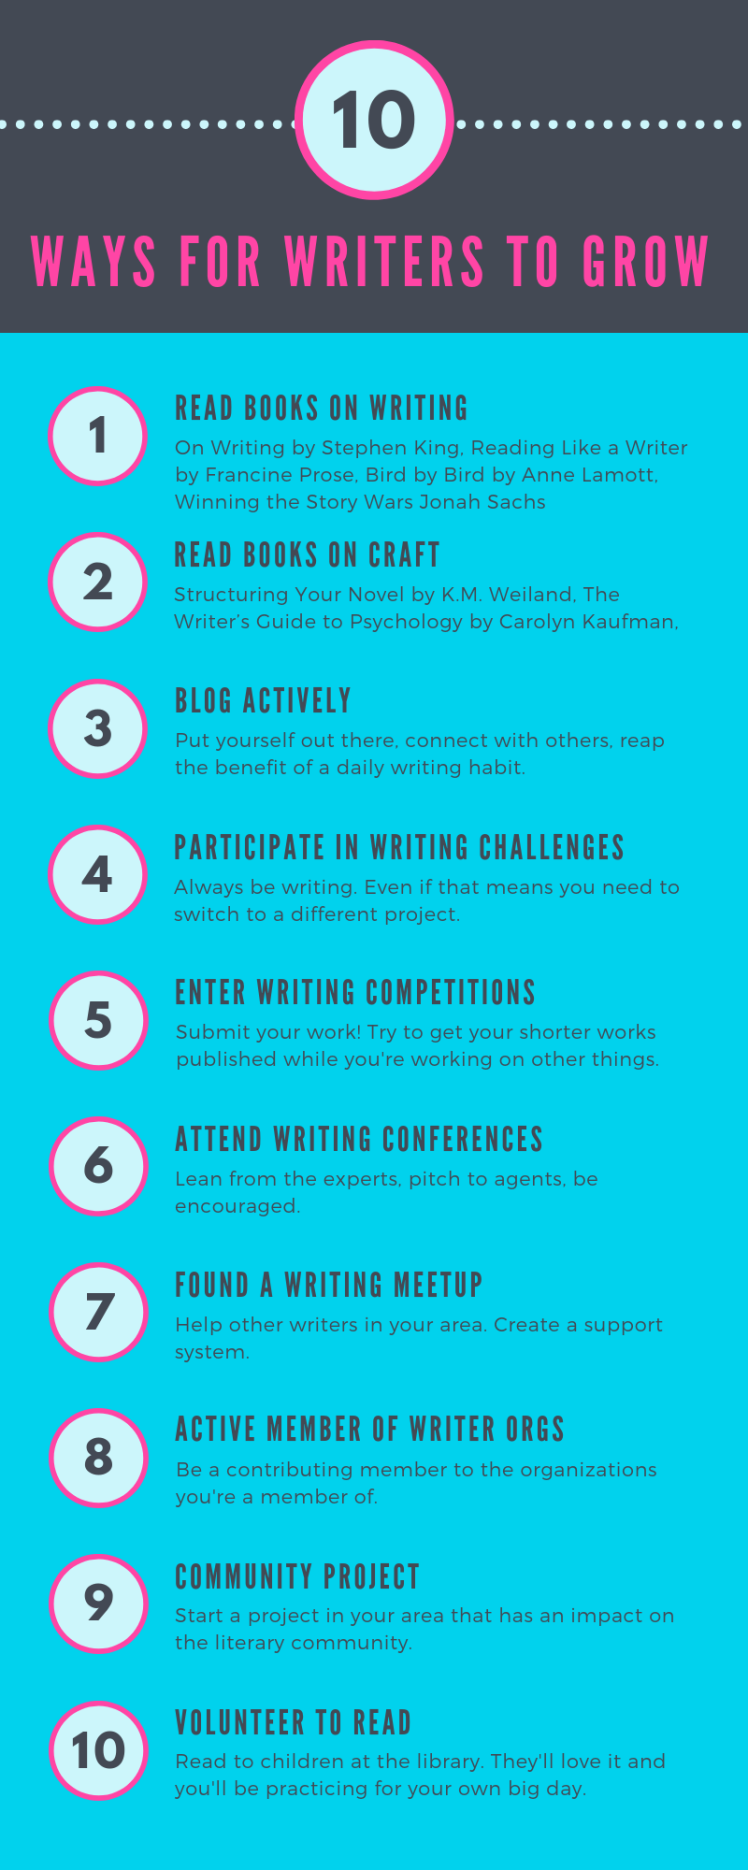 10 Ways for Writers to Grow